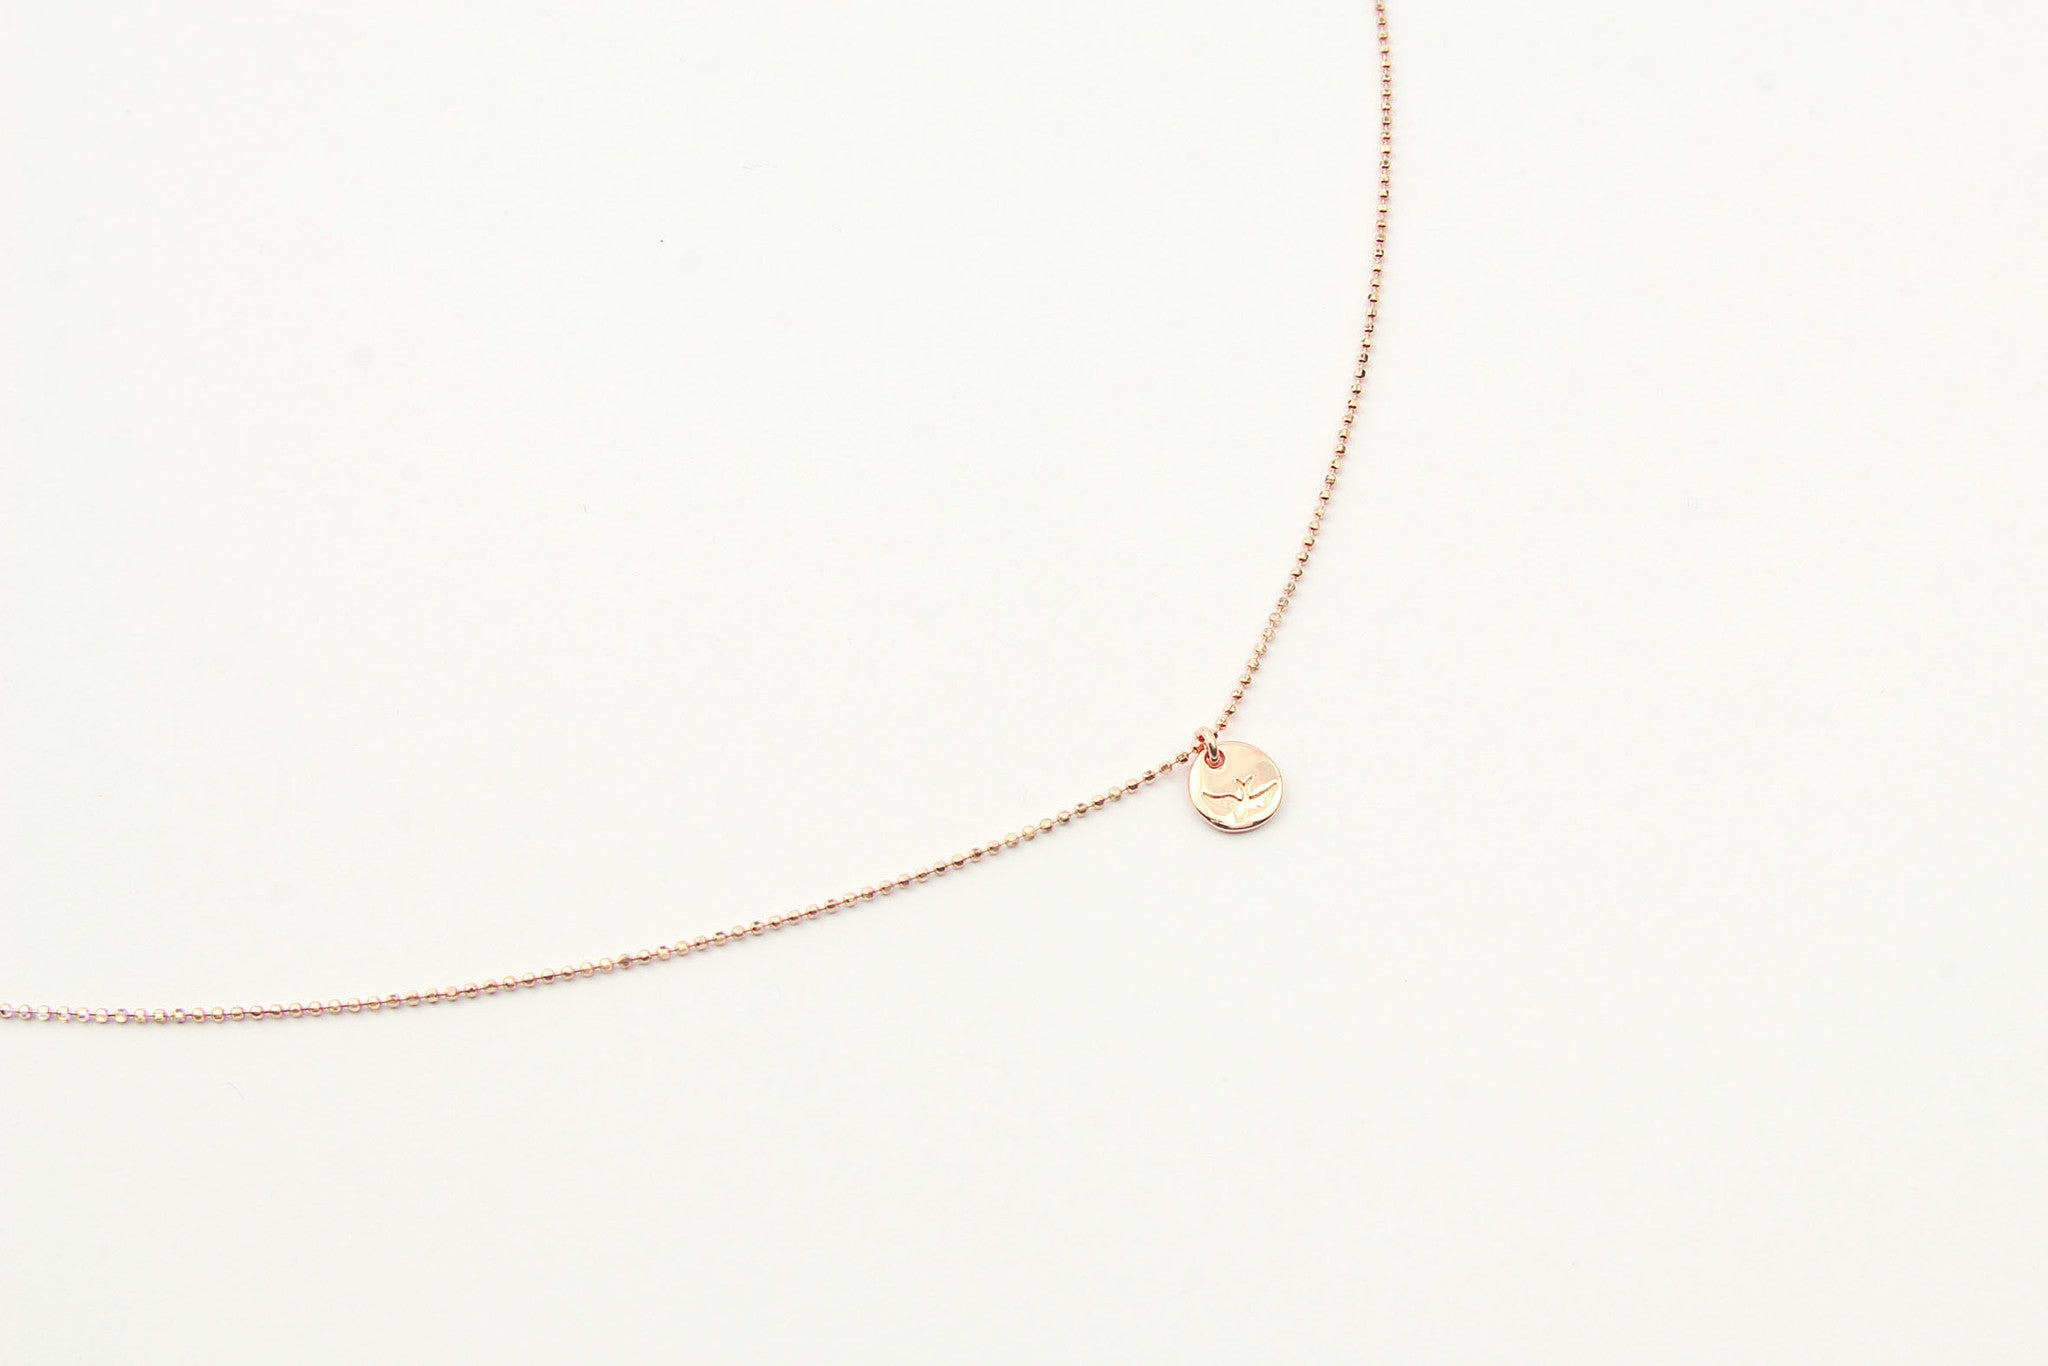 jewelberry necklace kette bird token bead chain rose gold plated sterling silver fine jewelry handmade with love fairtrade